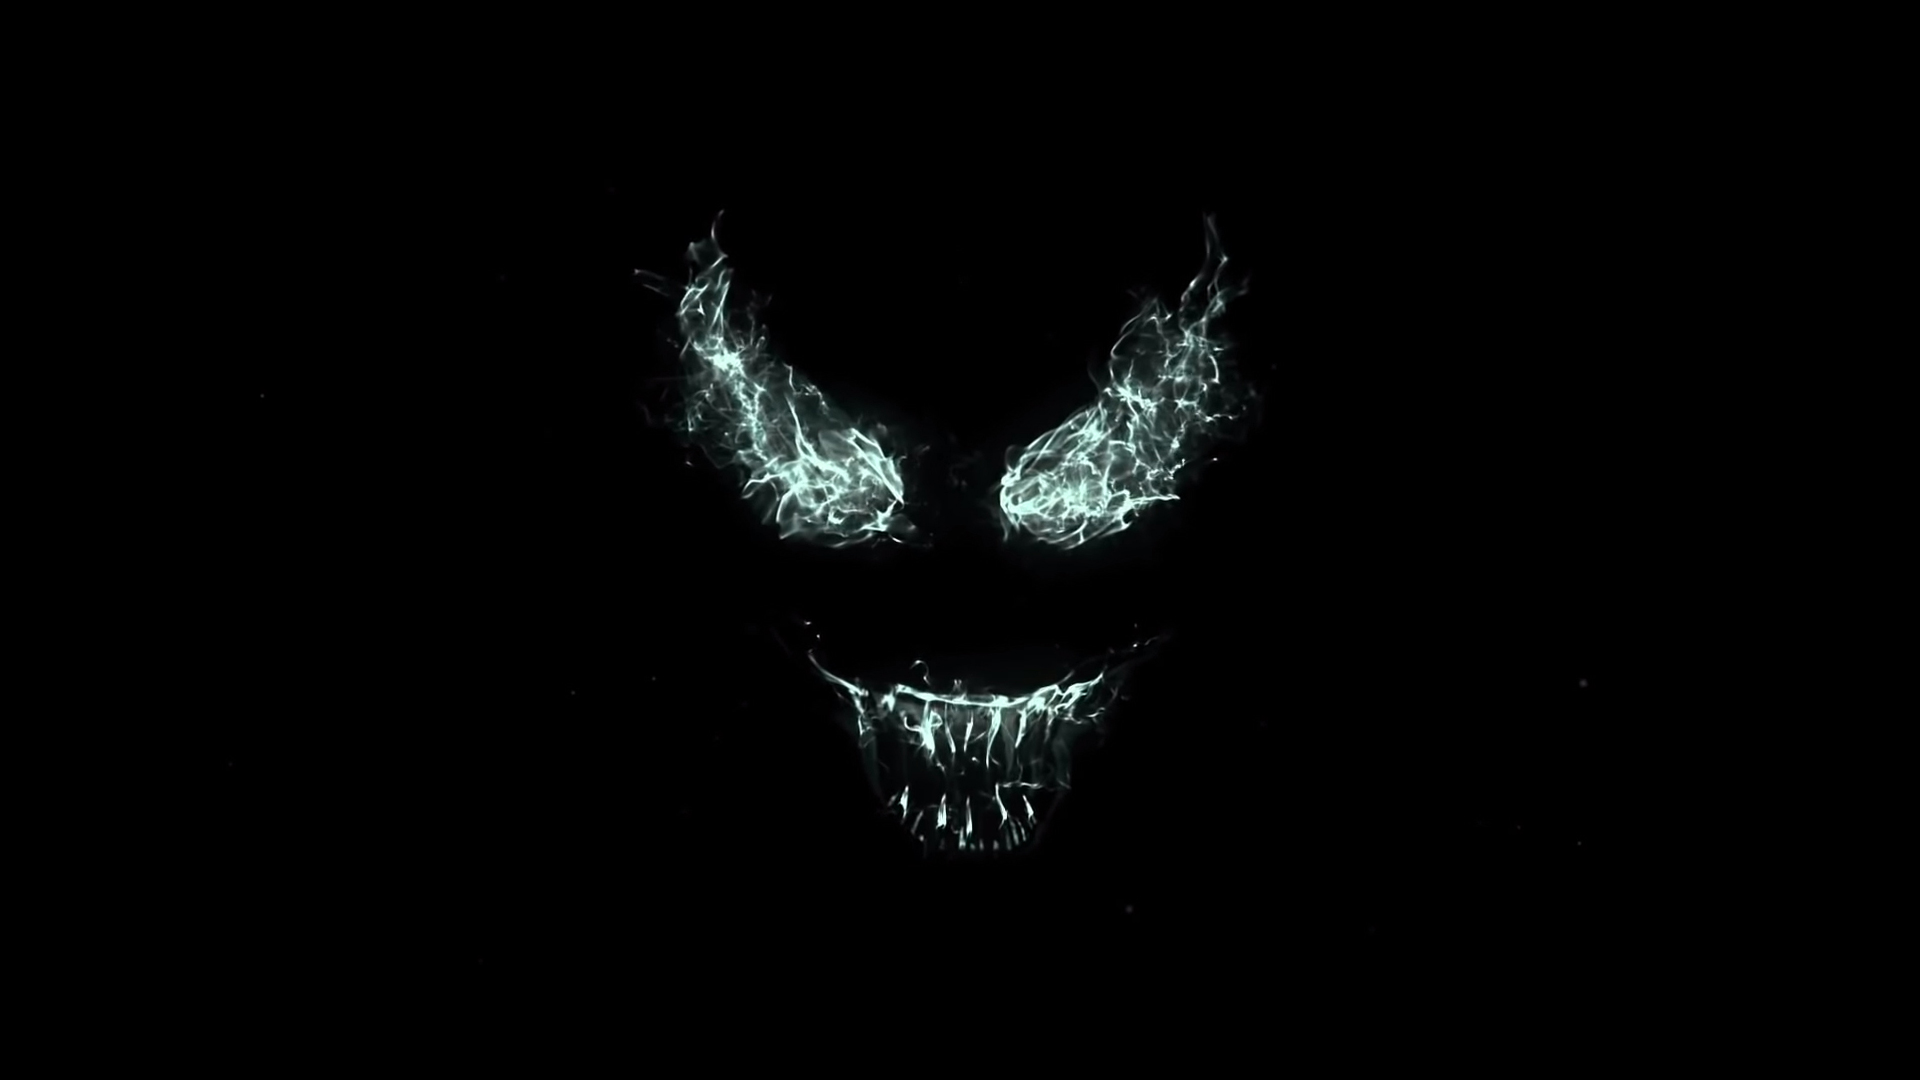 Venom Movie 2018 Hd Movies 4k Wallpapers Images Backgrounds